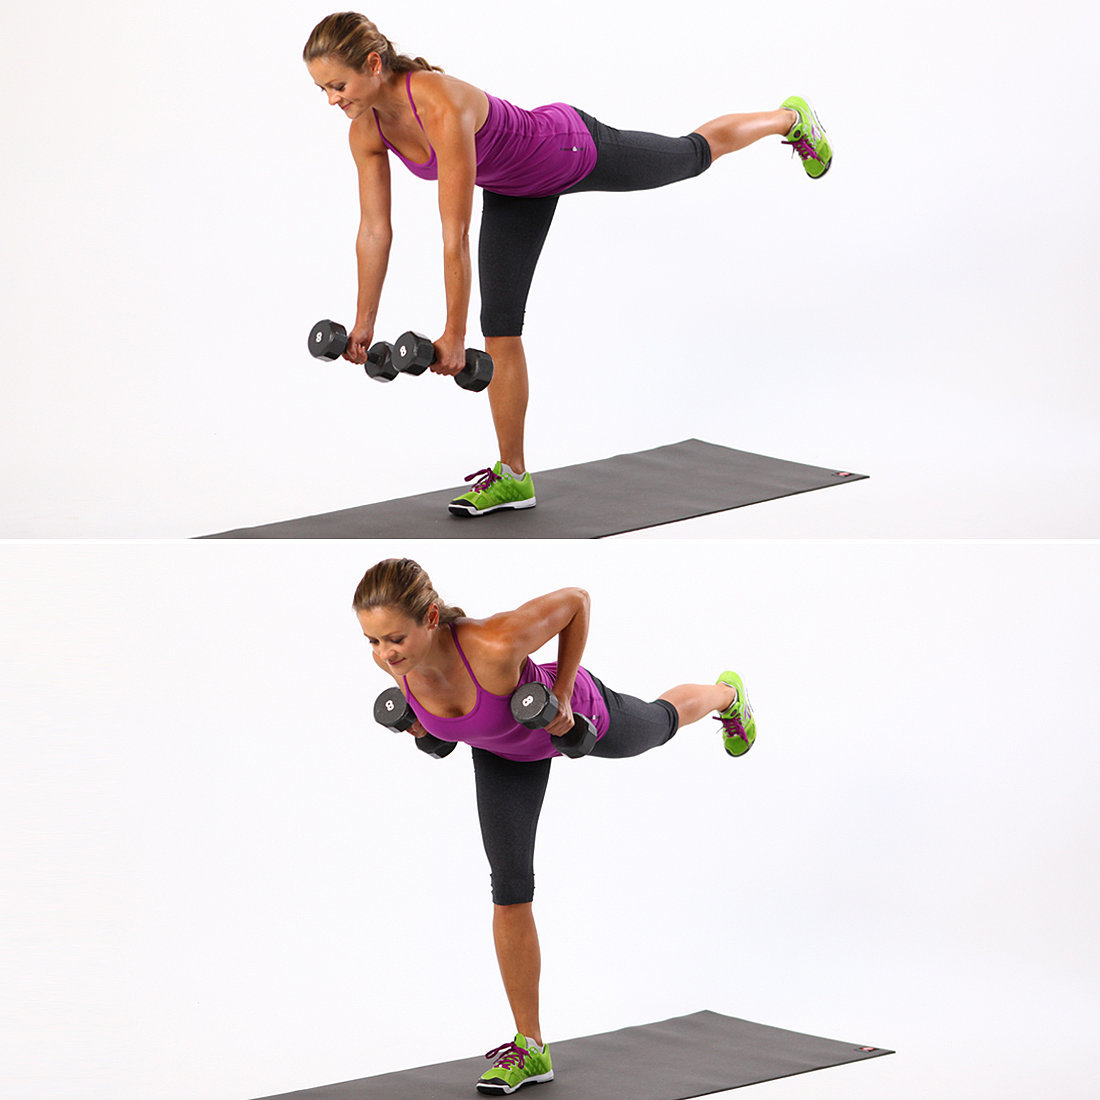 Single Leg Dumbbell Deadlifts with Rows